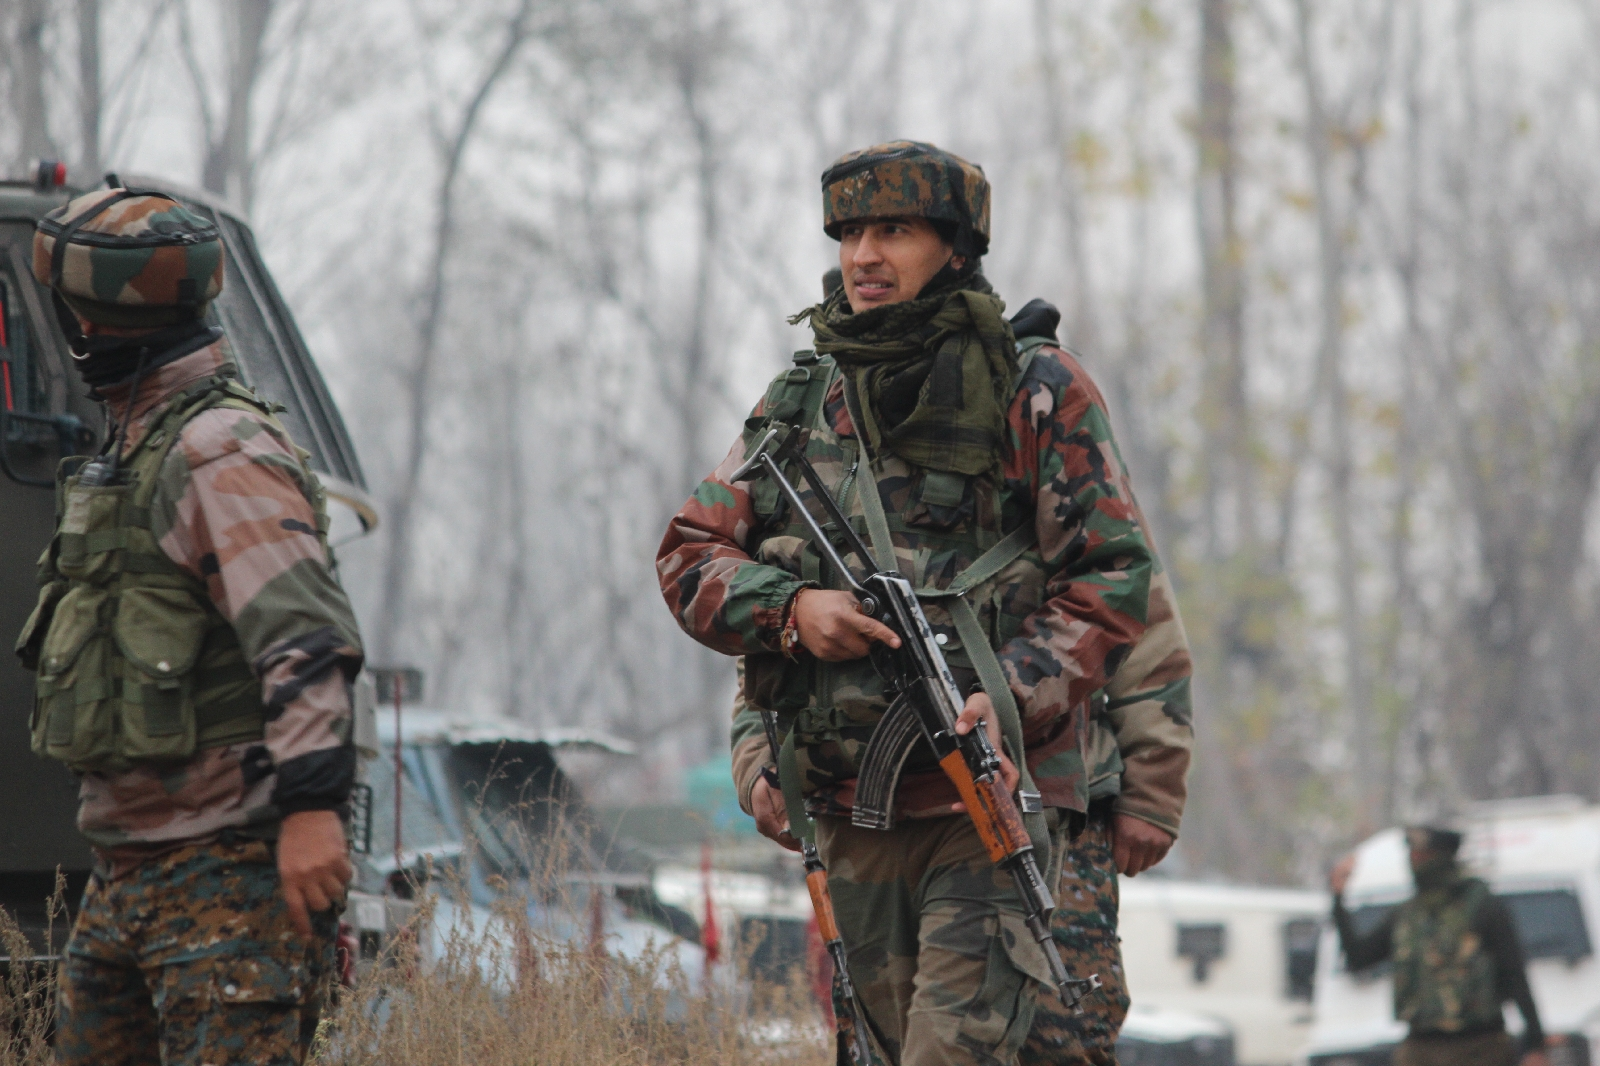 Government forces during a gunbattle in South Kashmir